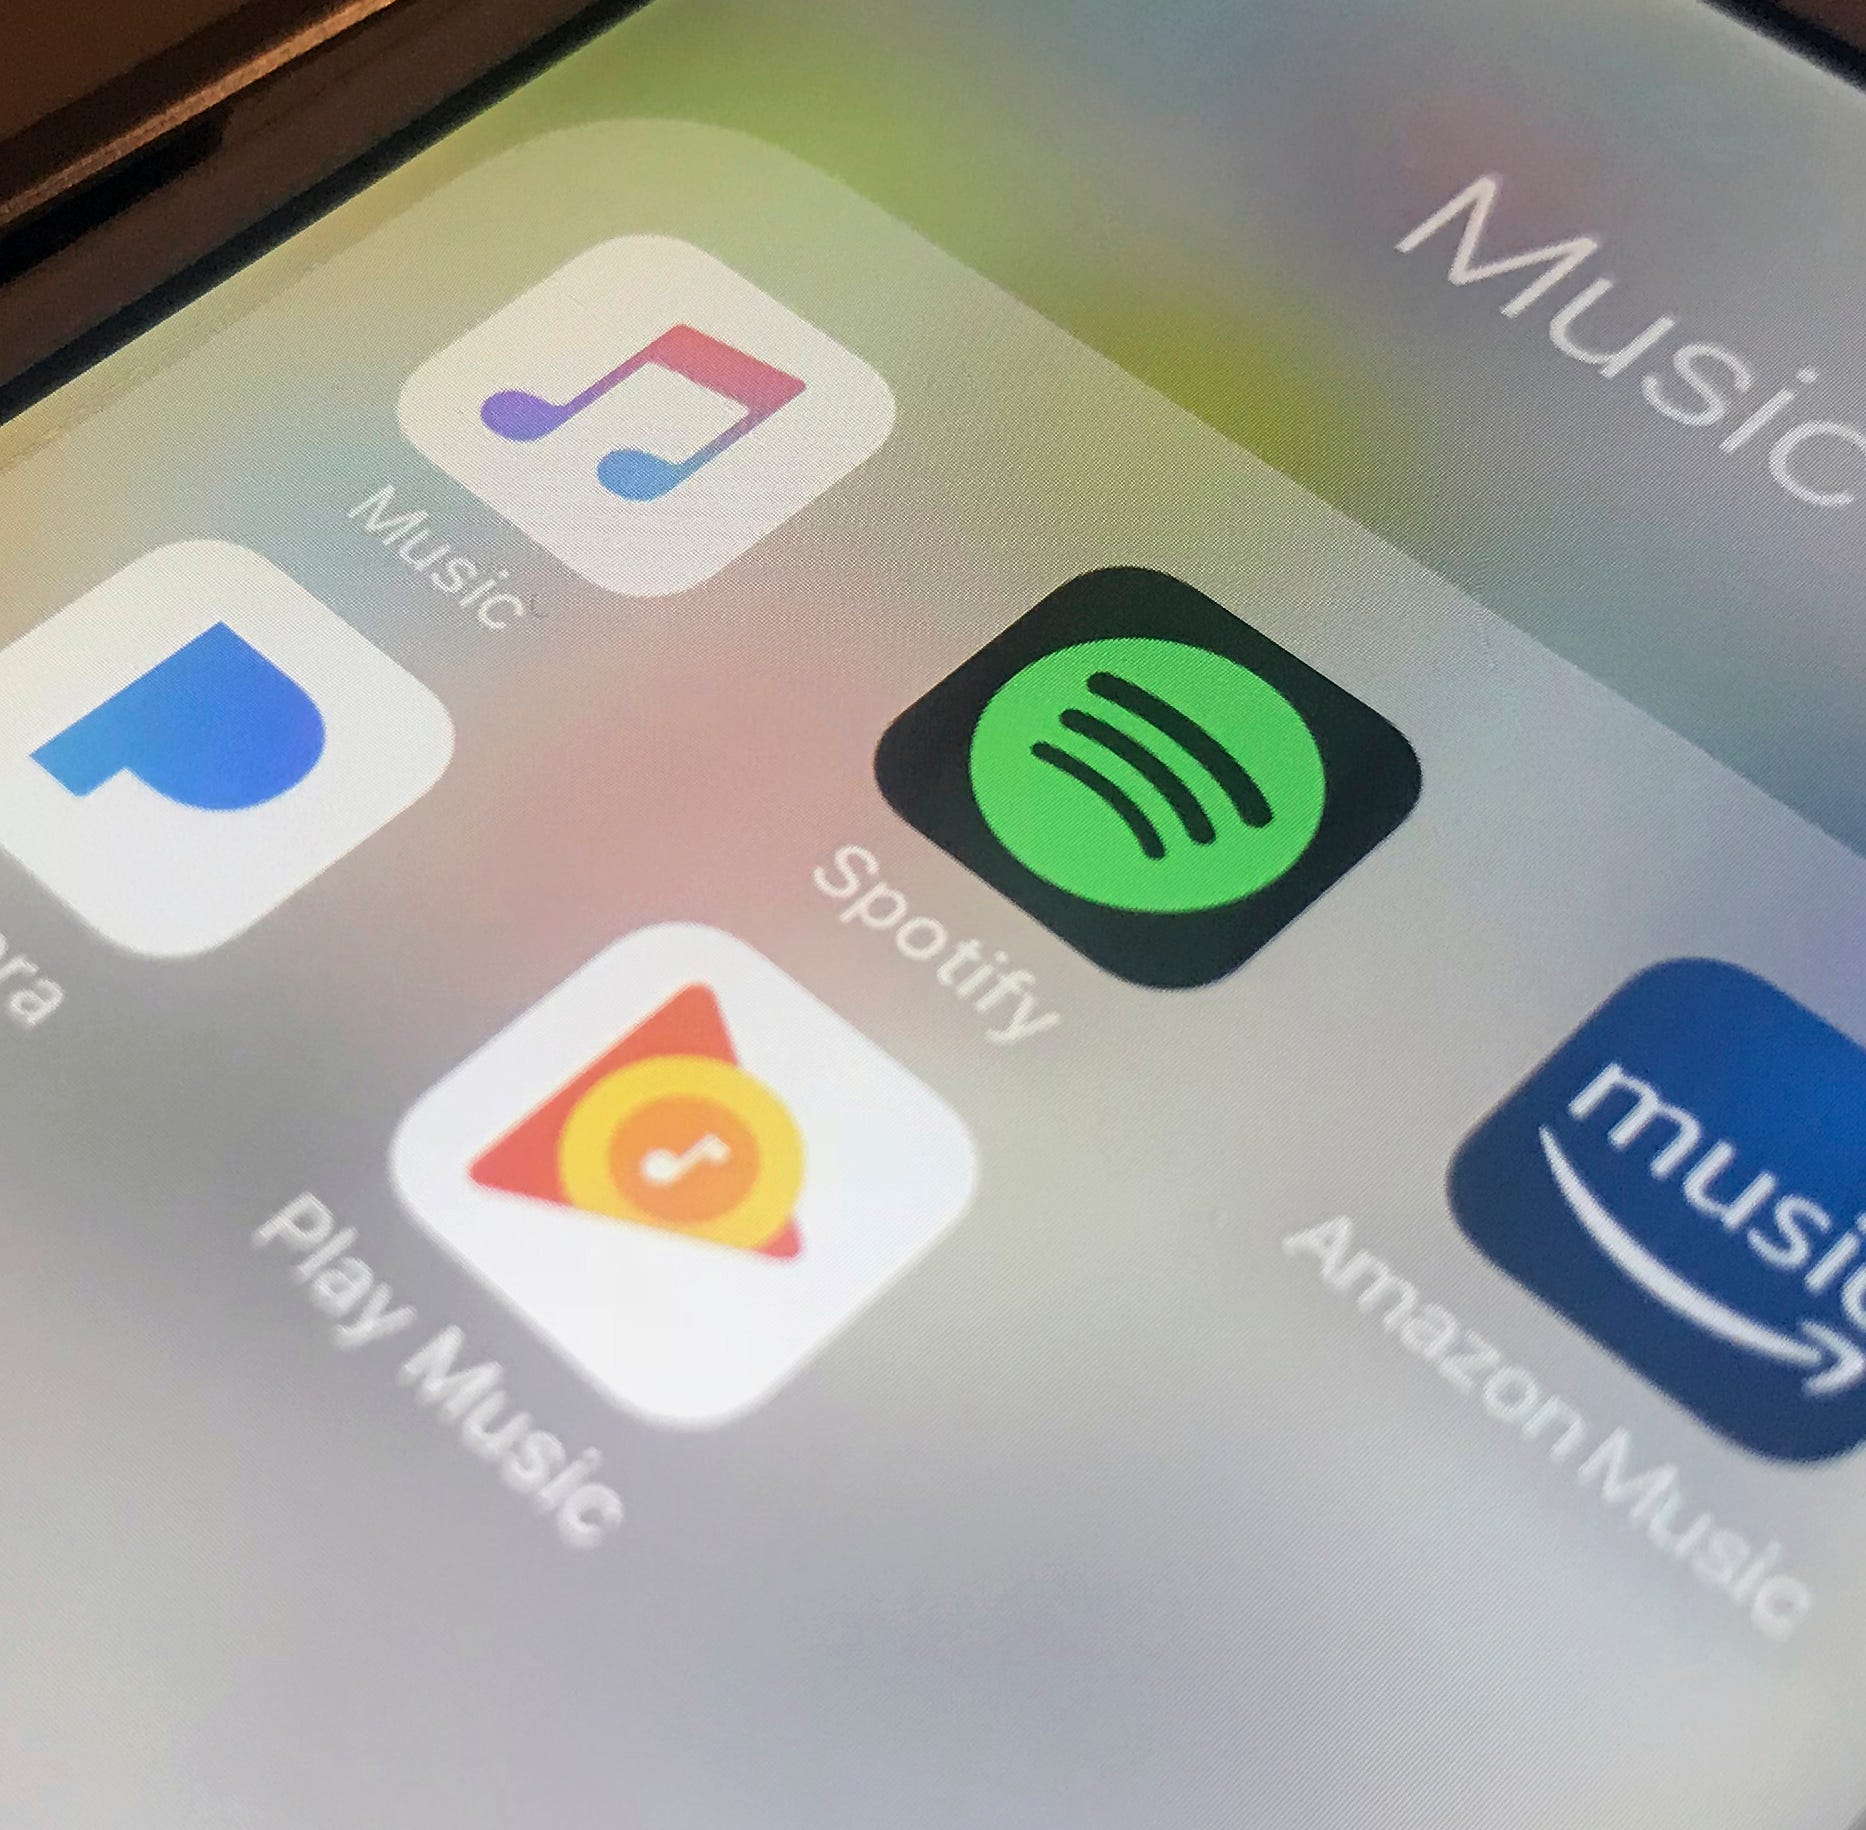 Nashville Metro Council backs songwriters in dispute with music streaming companies